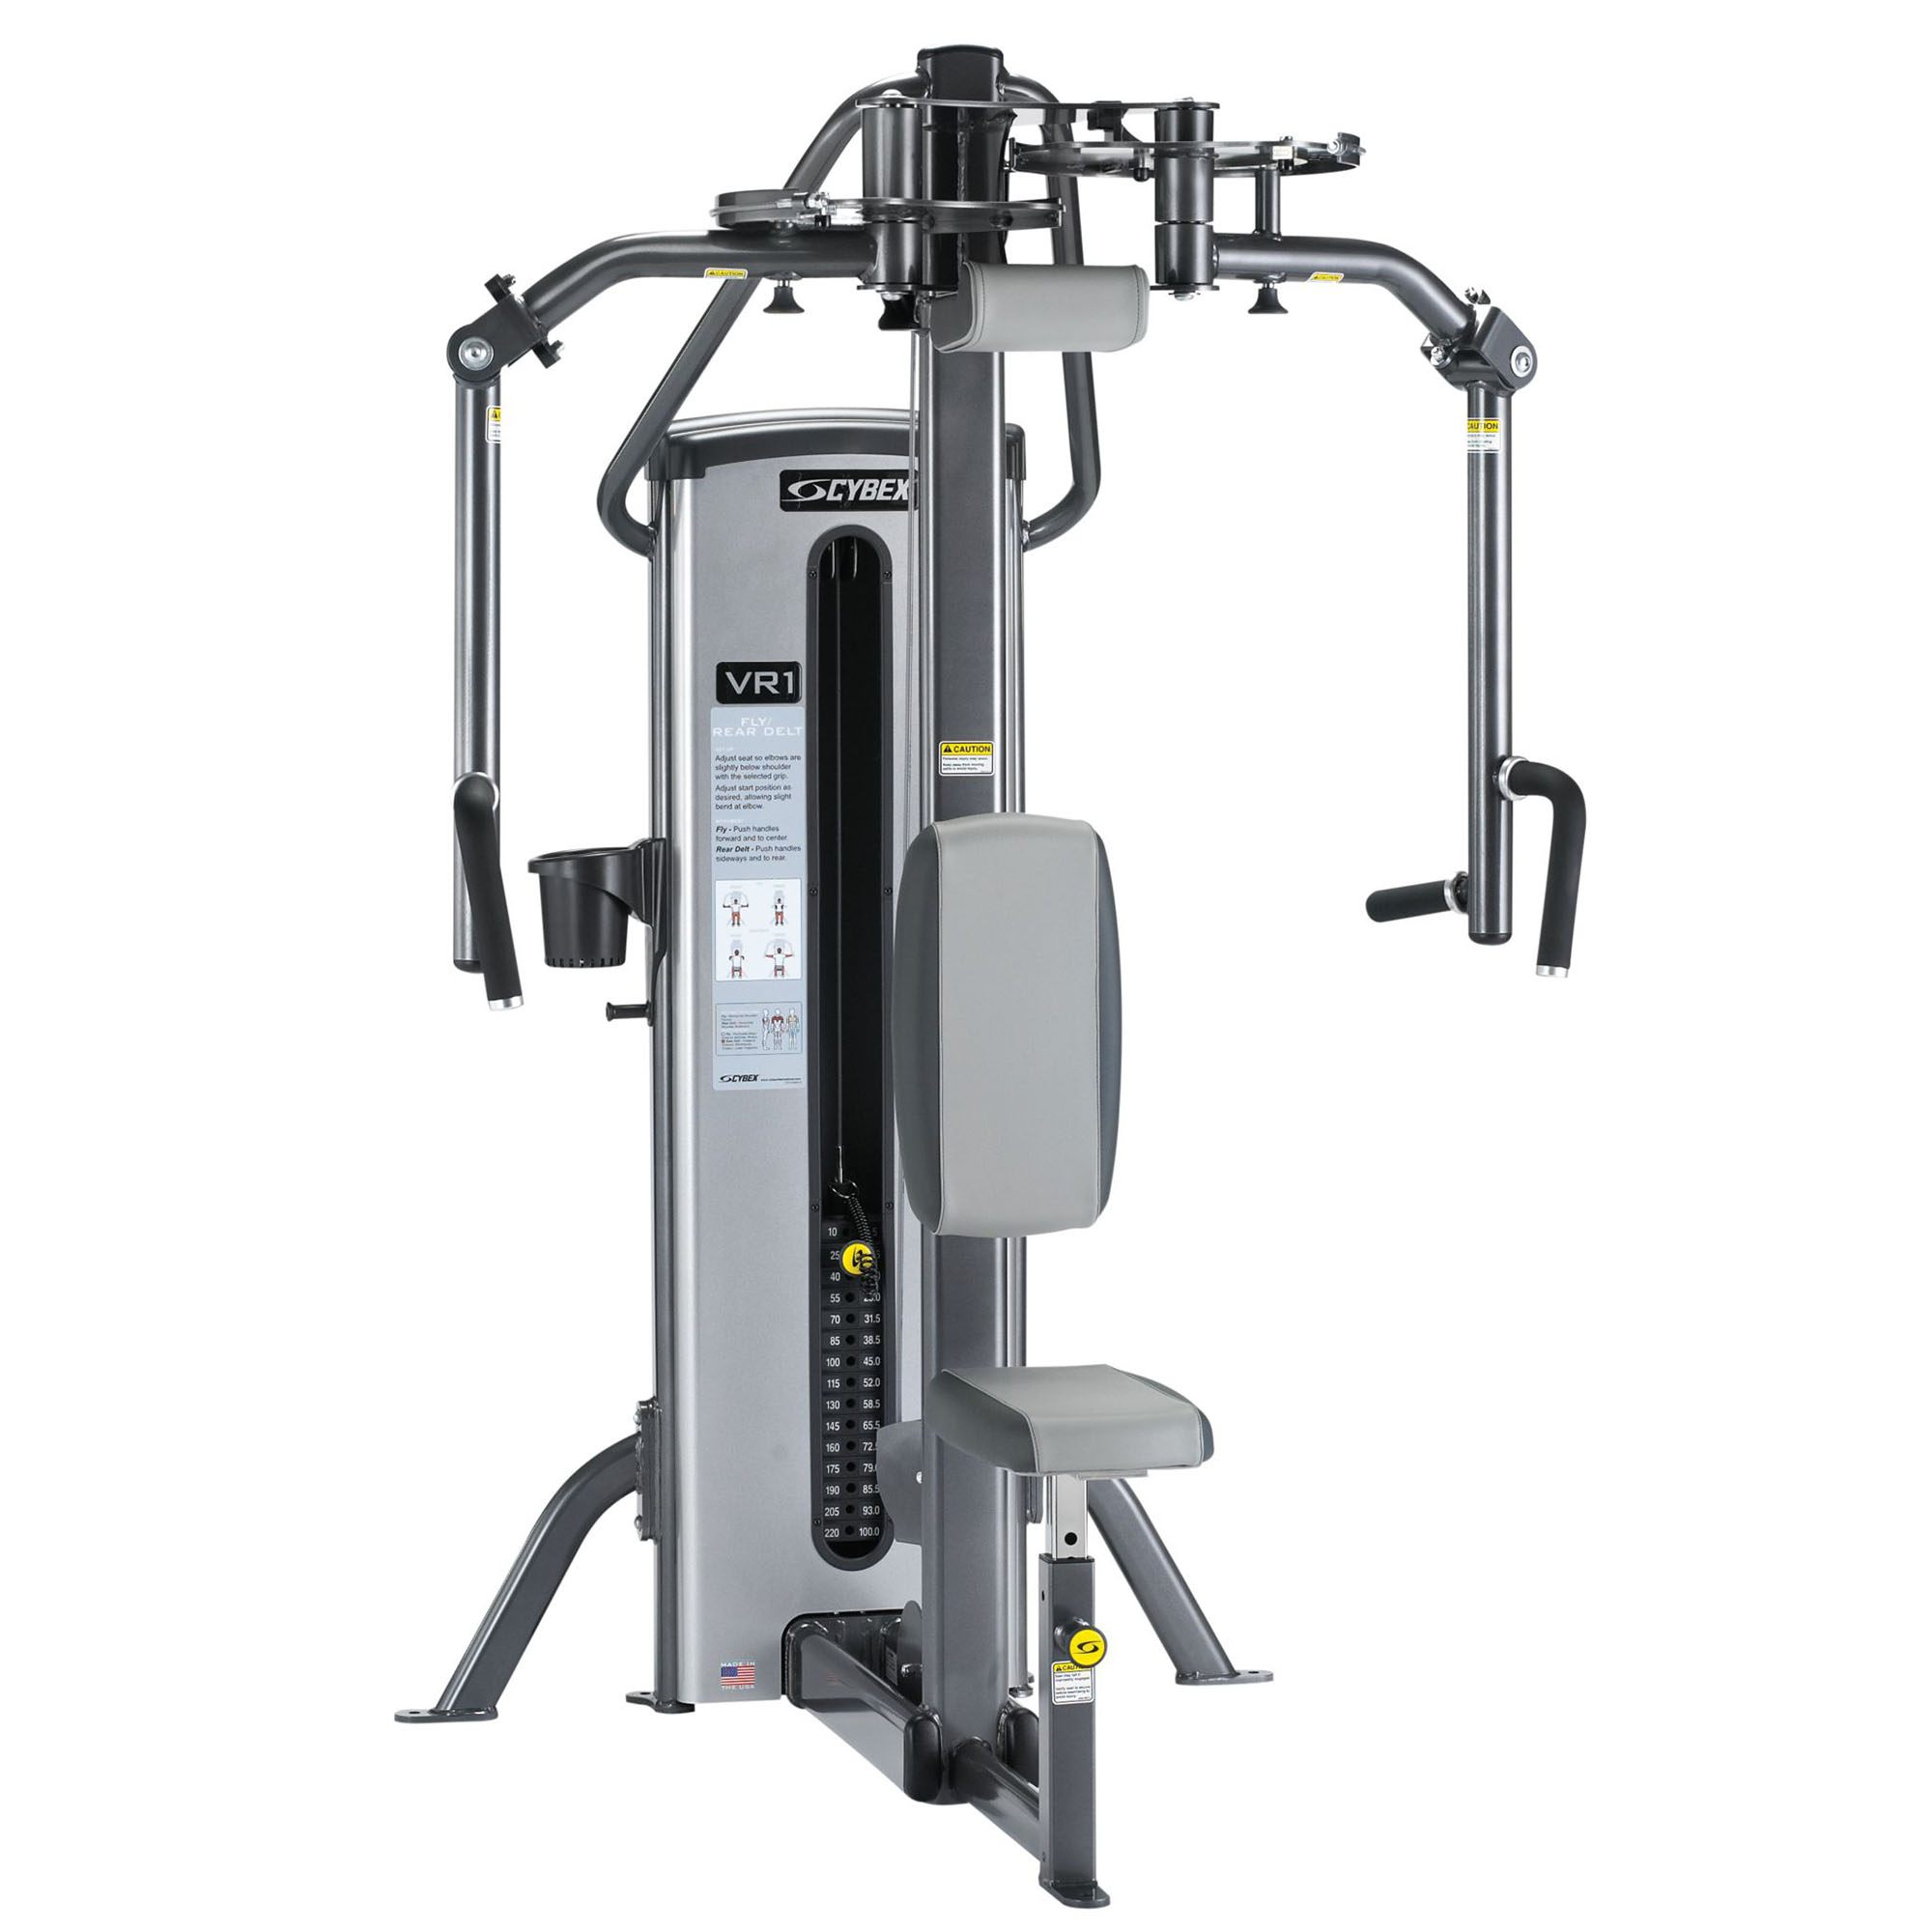 Cybex VR1 Duals Fly and Rear Delt